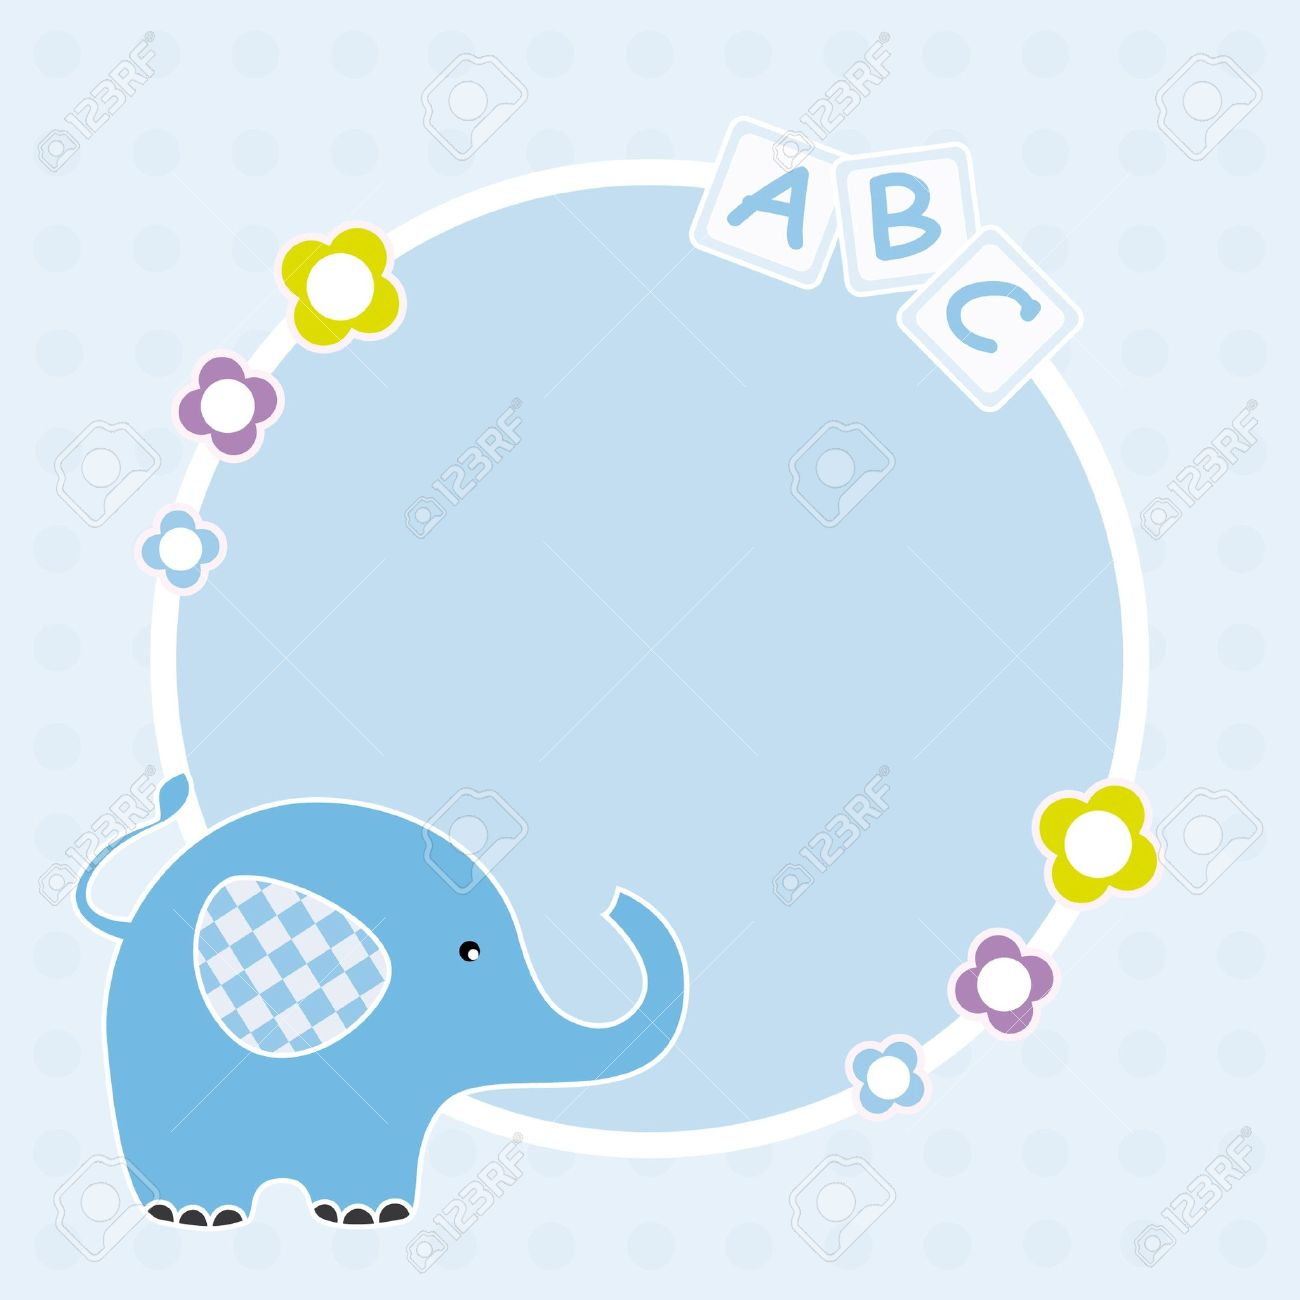 baby boy arrival announcement space for text or photo frame elephant stock vector - Elephant Picture Frame